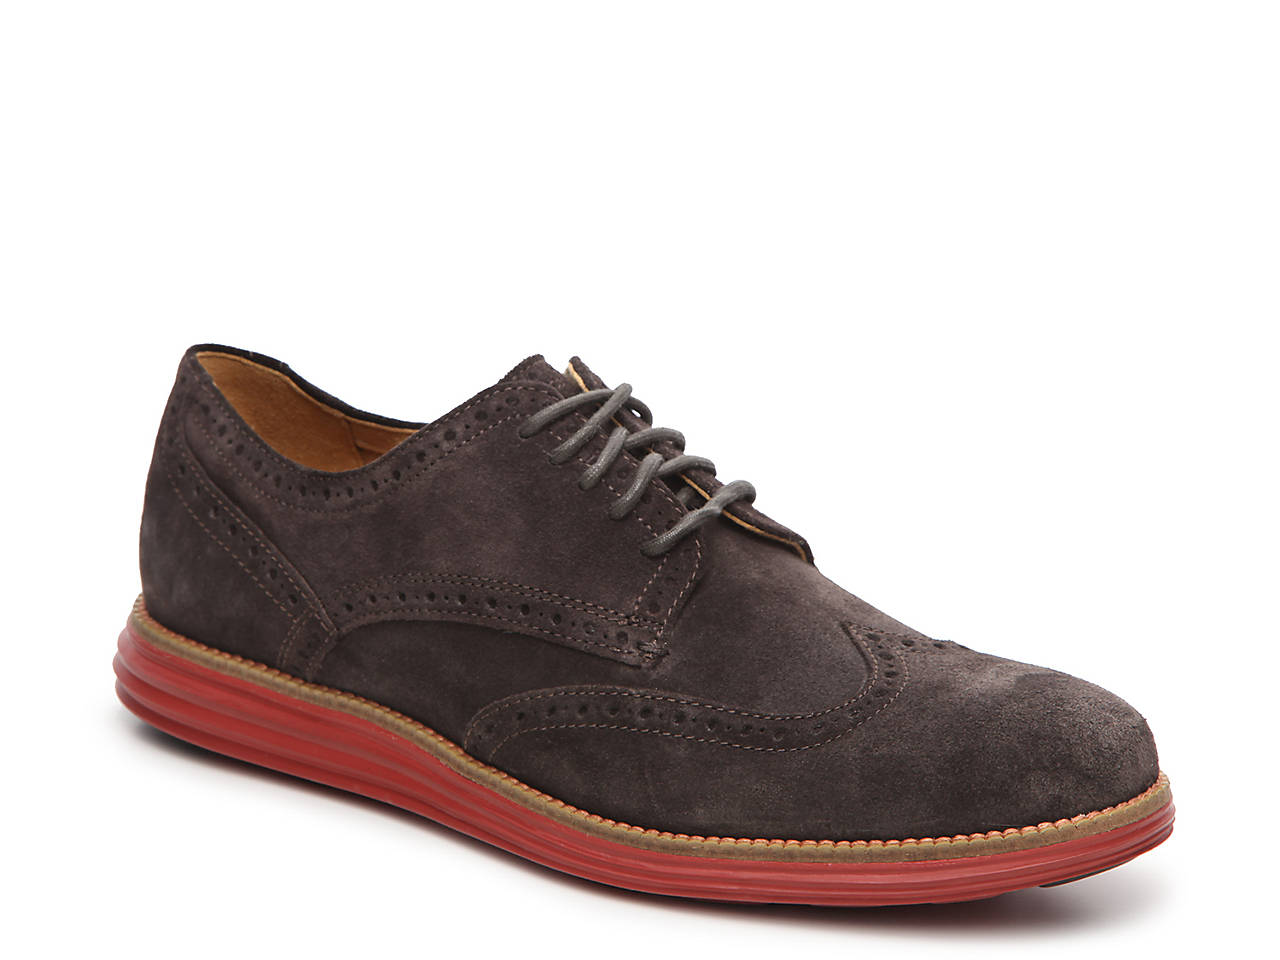 Cole Haan OriginalGrand Wingtip shoes Buy Cheap Shopping Online Clearance Discounts 2veHAwyz